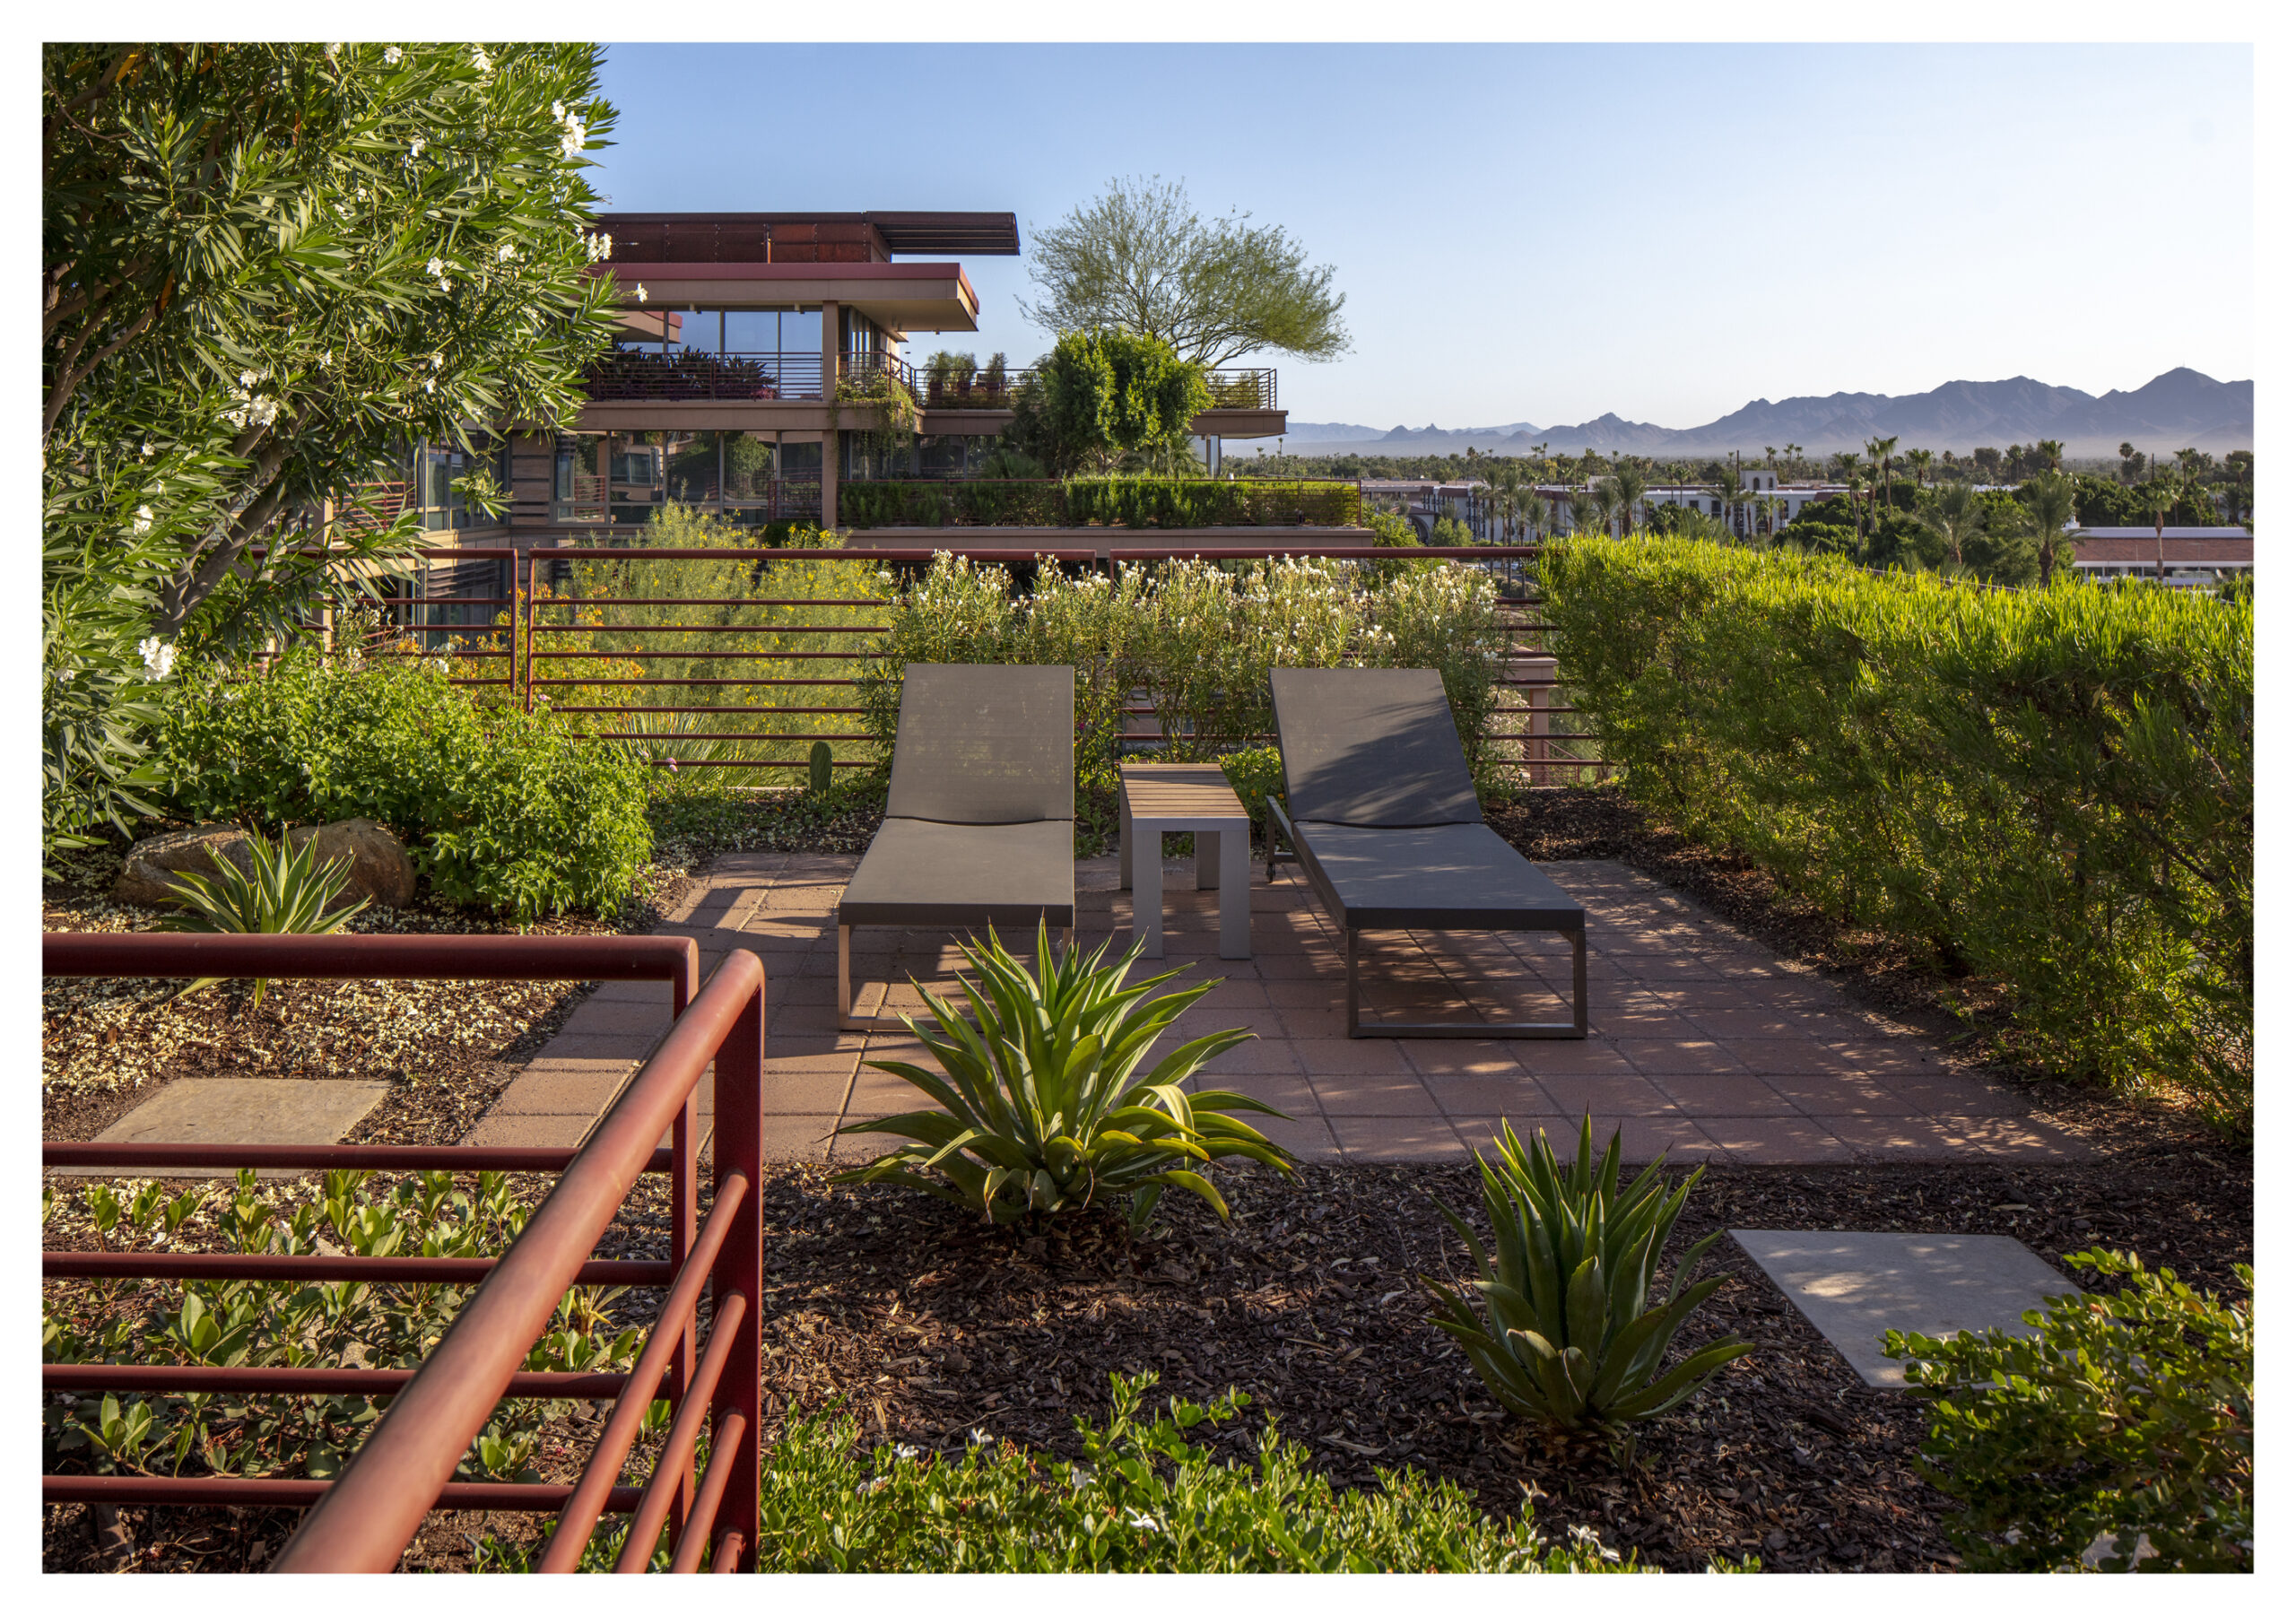 The green roof at Camelview Village